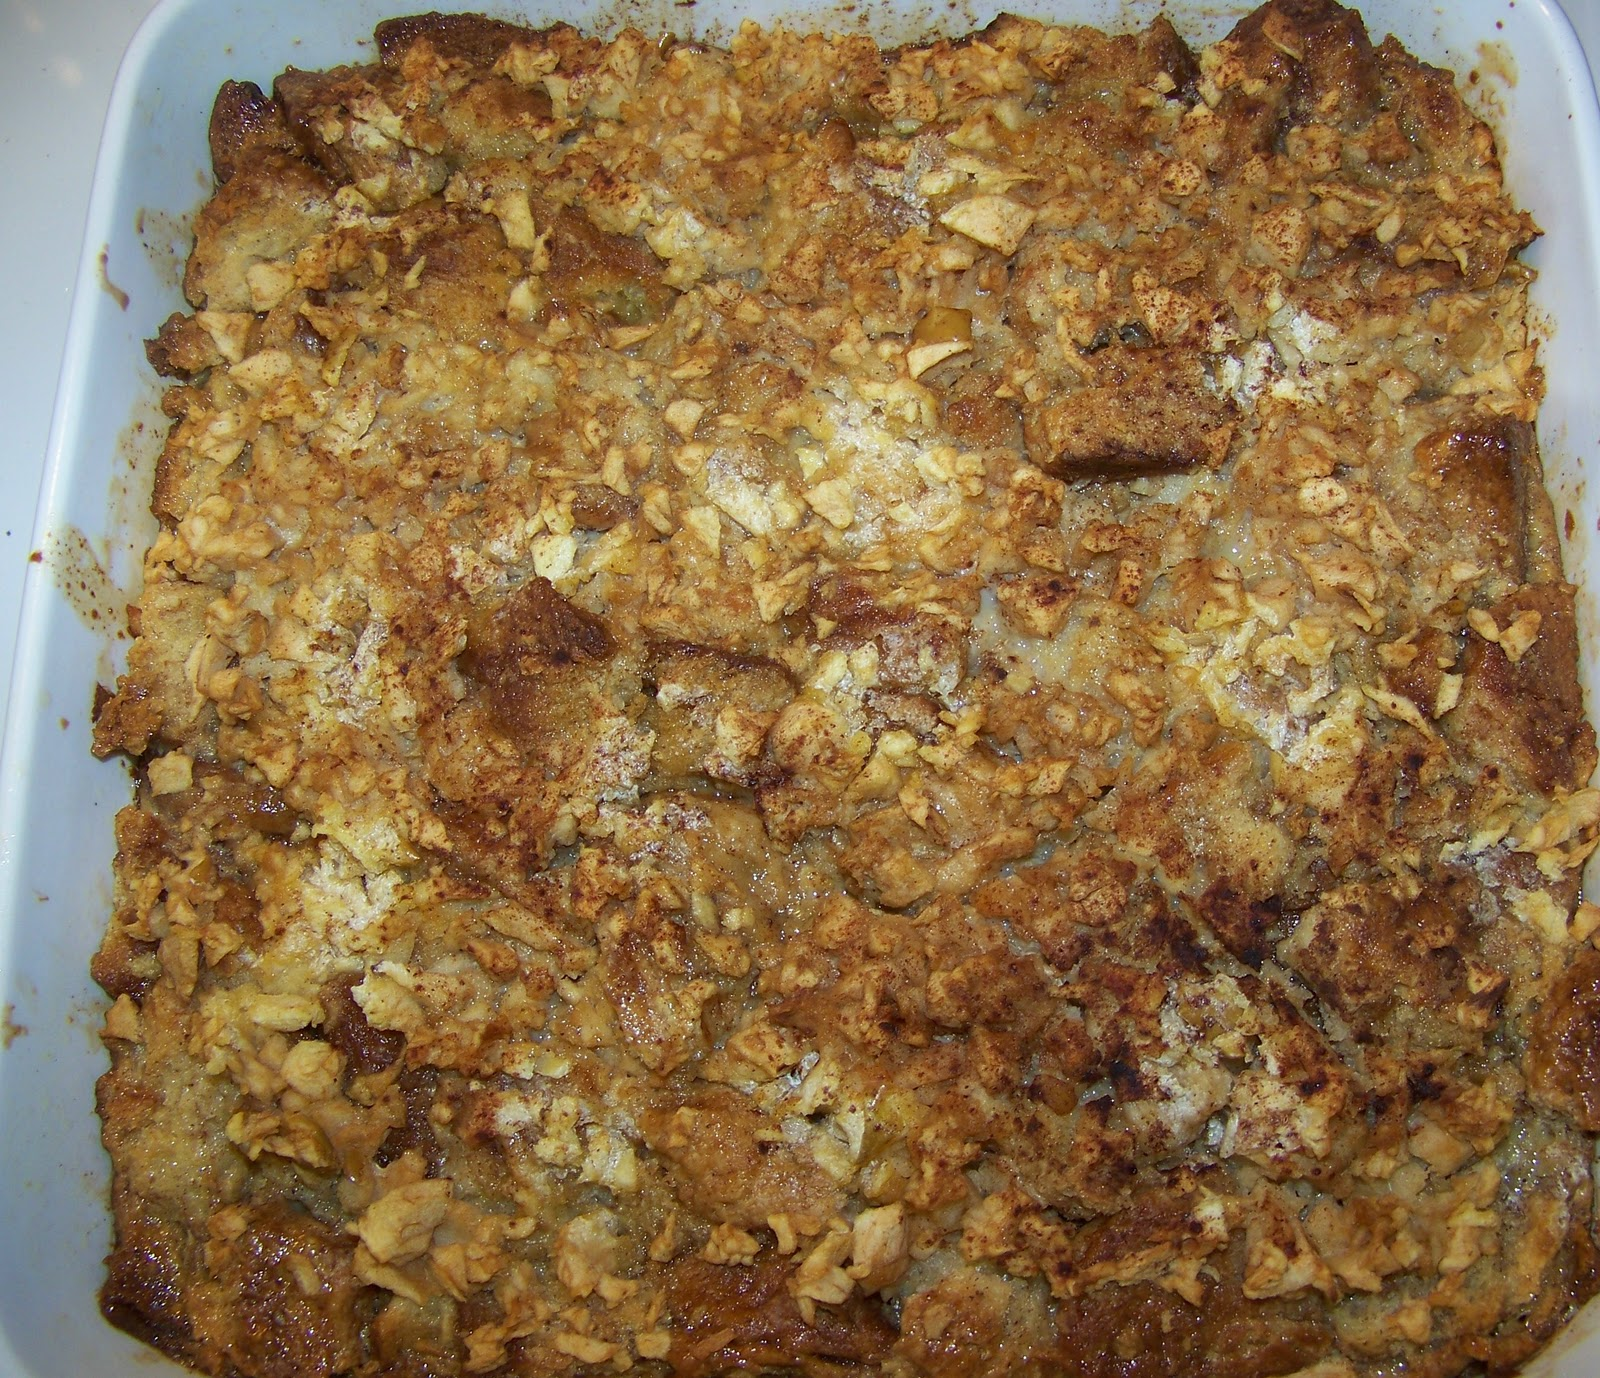 Curry and Comfort: Cinnamon-Apple Bread Pudding with Caramel Sauce